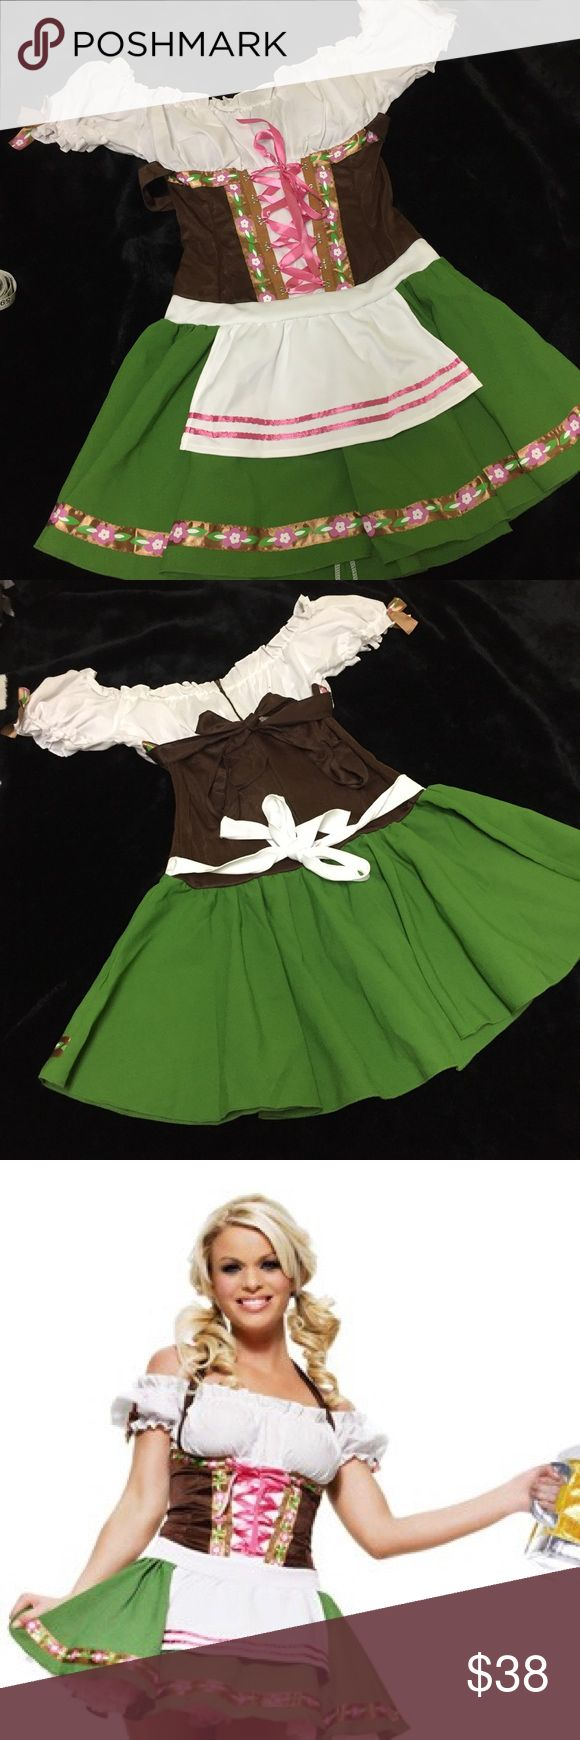 Beer maiden Oktoberfest costume A classic Halloween staple! Leg Avenue's German Oktoberfest Gretchen beer maid costume. Size M. Excellent condition. Includes dress only. Brown tie can be tied behind you or halter style. See last pic for halter styling. Leg Avenue Dresses Mini